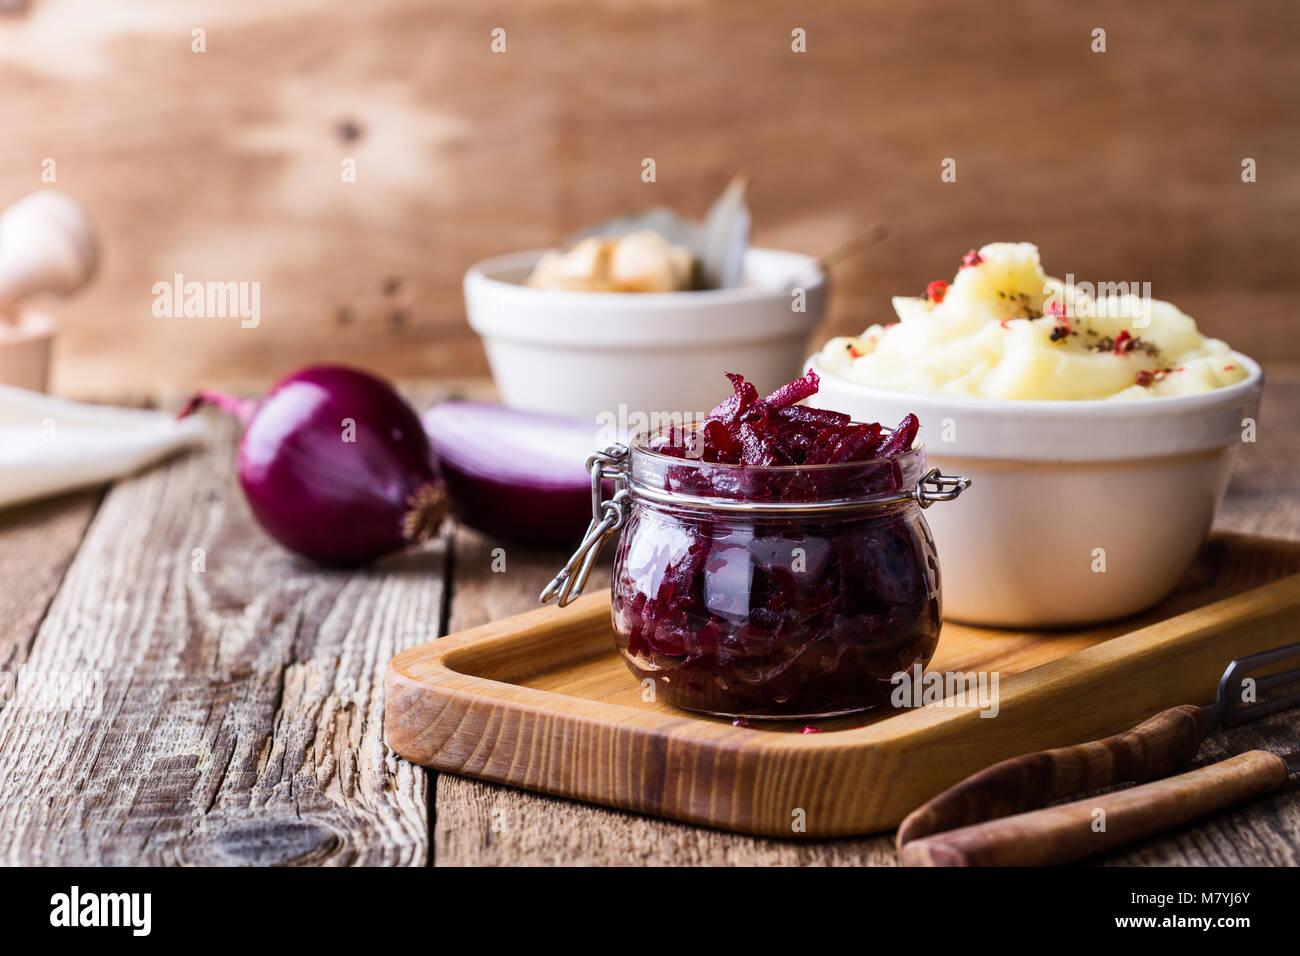 Healthy vegetarian meal. Mashed potatoes and homemade pickled mushrooms and beetroot salad on rustic wooden table - Stock Image